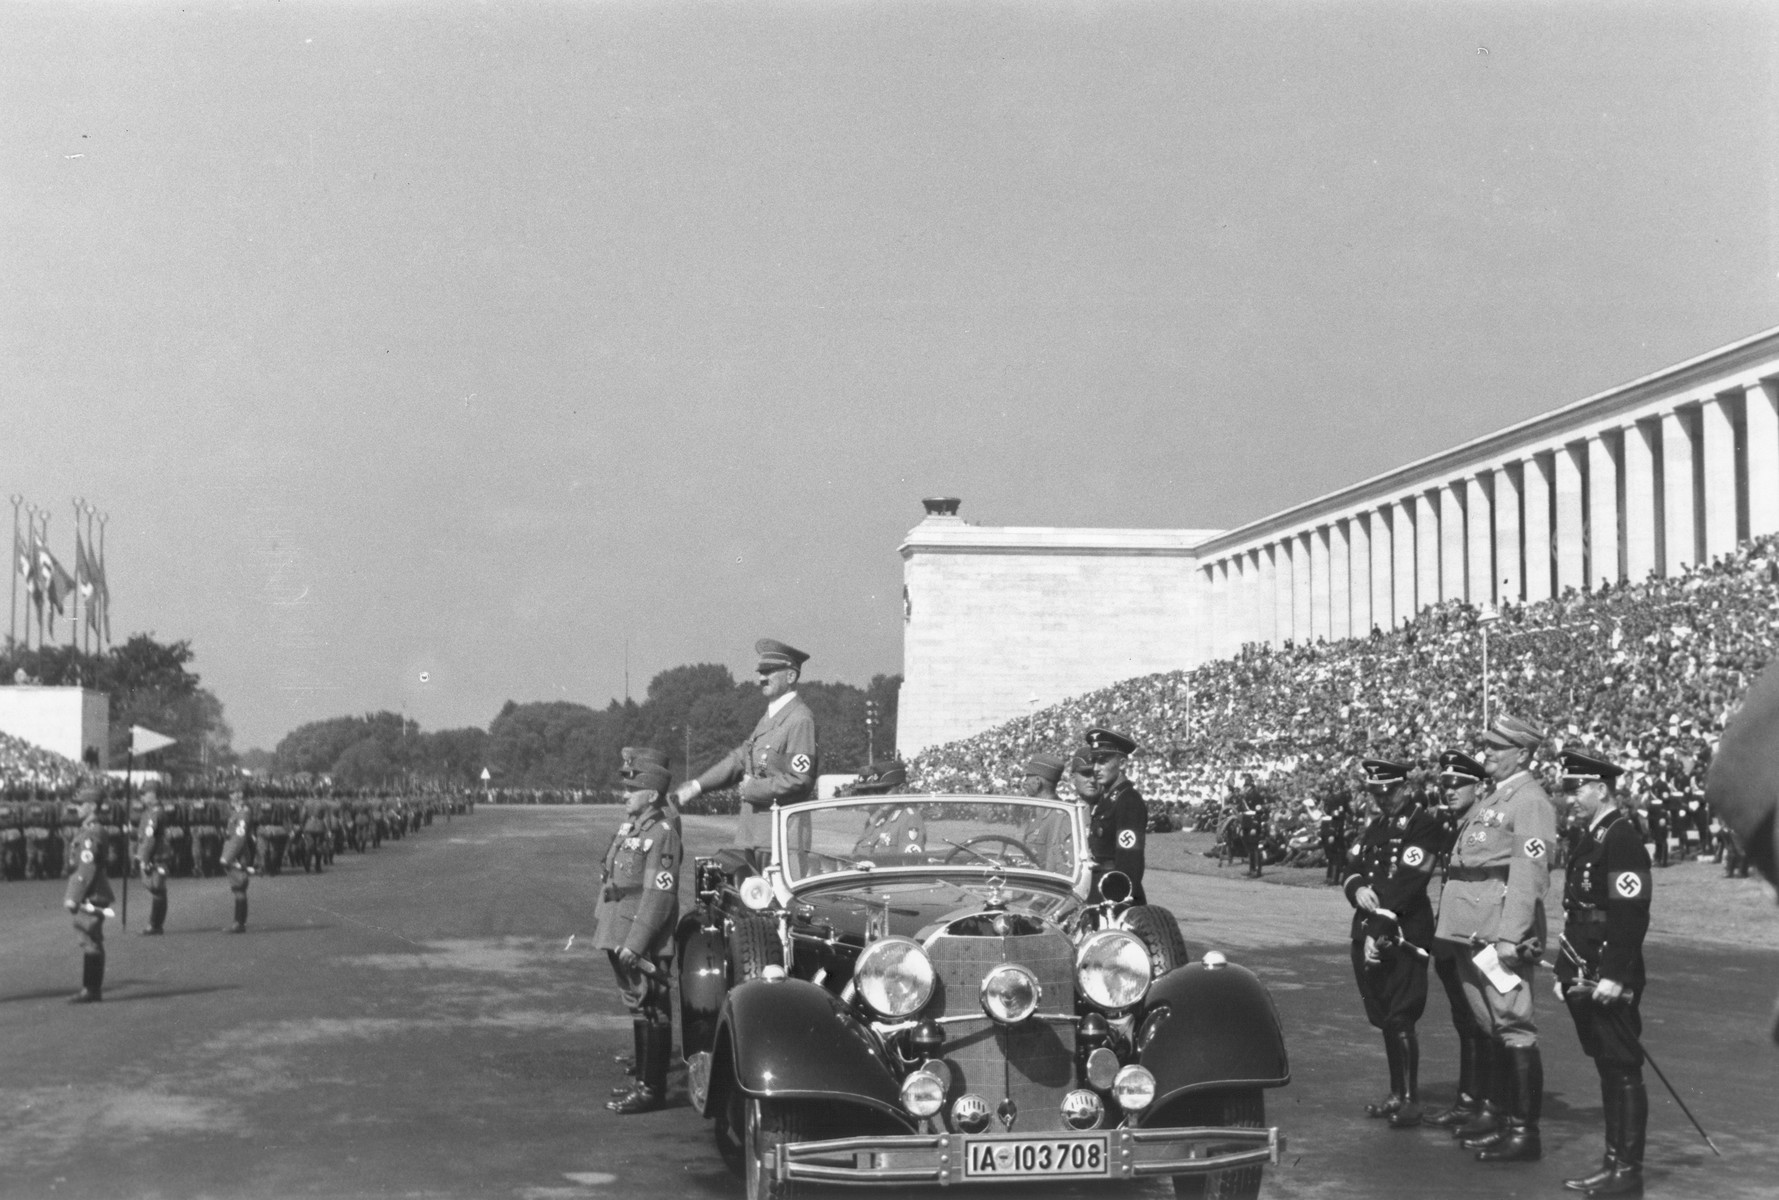 Adolf Hitler, standing in his open car, views the Reichsparteitag (Reich Party Day) gathering on the Zeppelin field in Nuremberg.